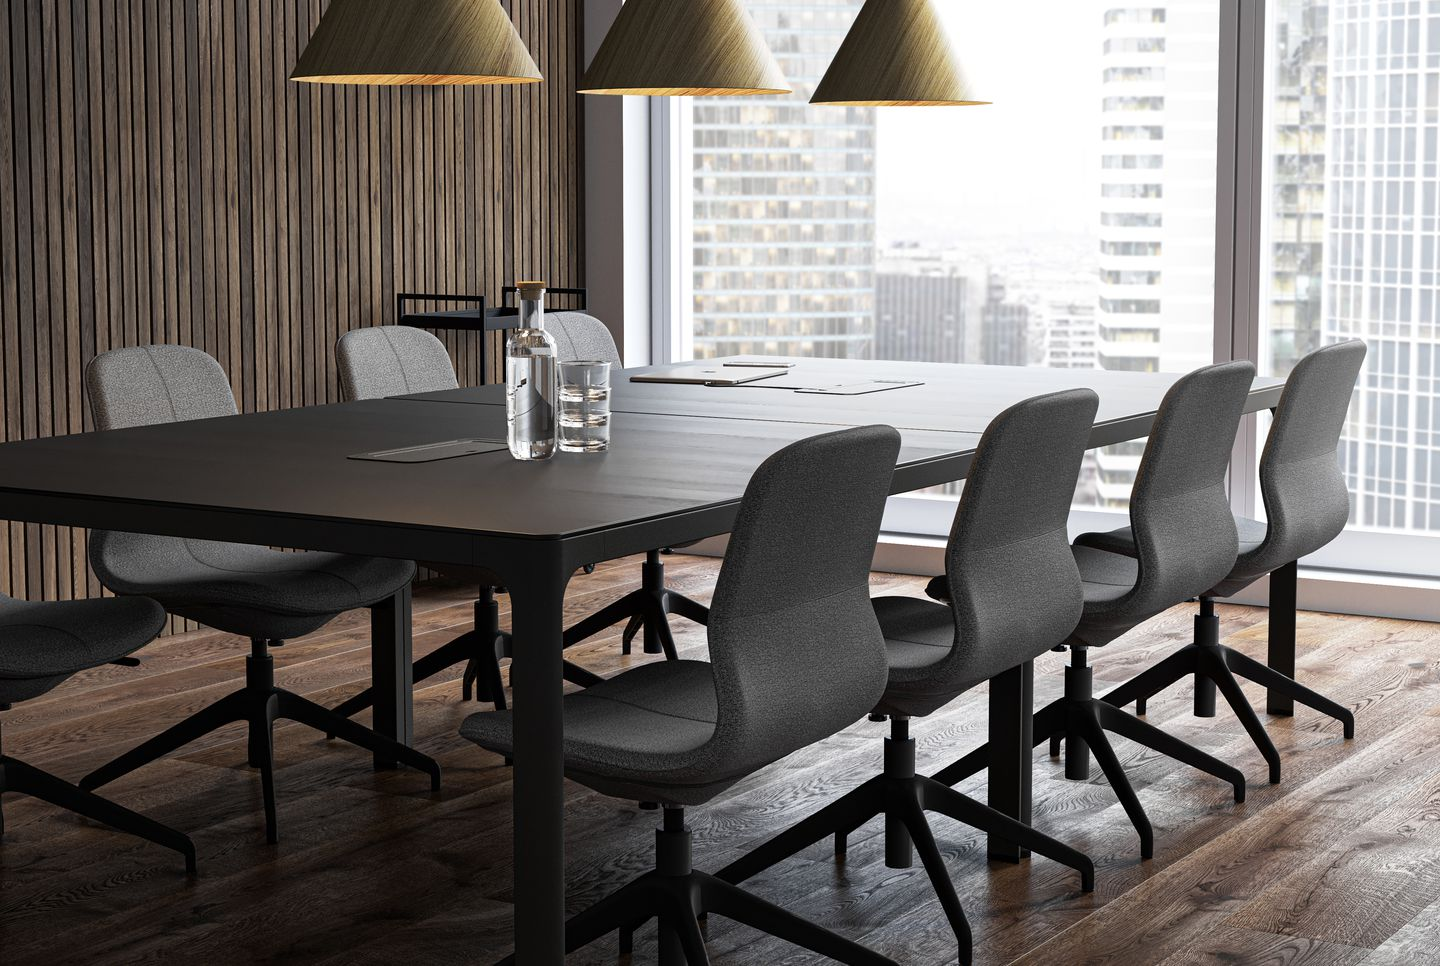 Meeting room with dark wooden panels, grey office chairs and black table. With wooden pendant lights in Nordic Dark setting